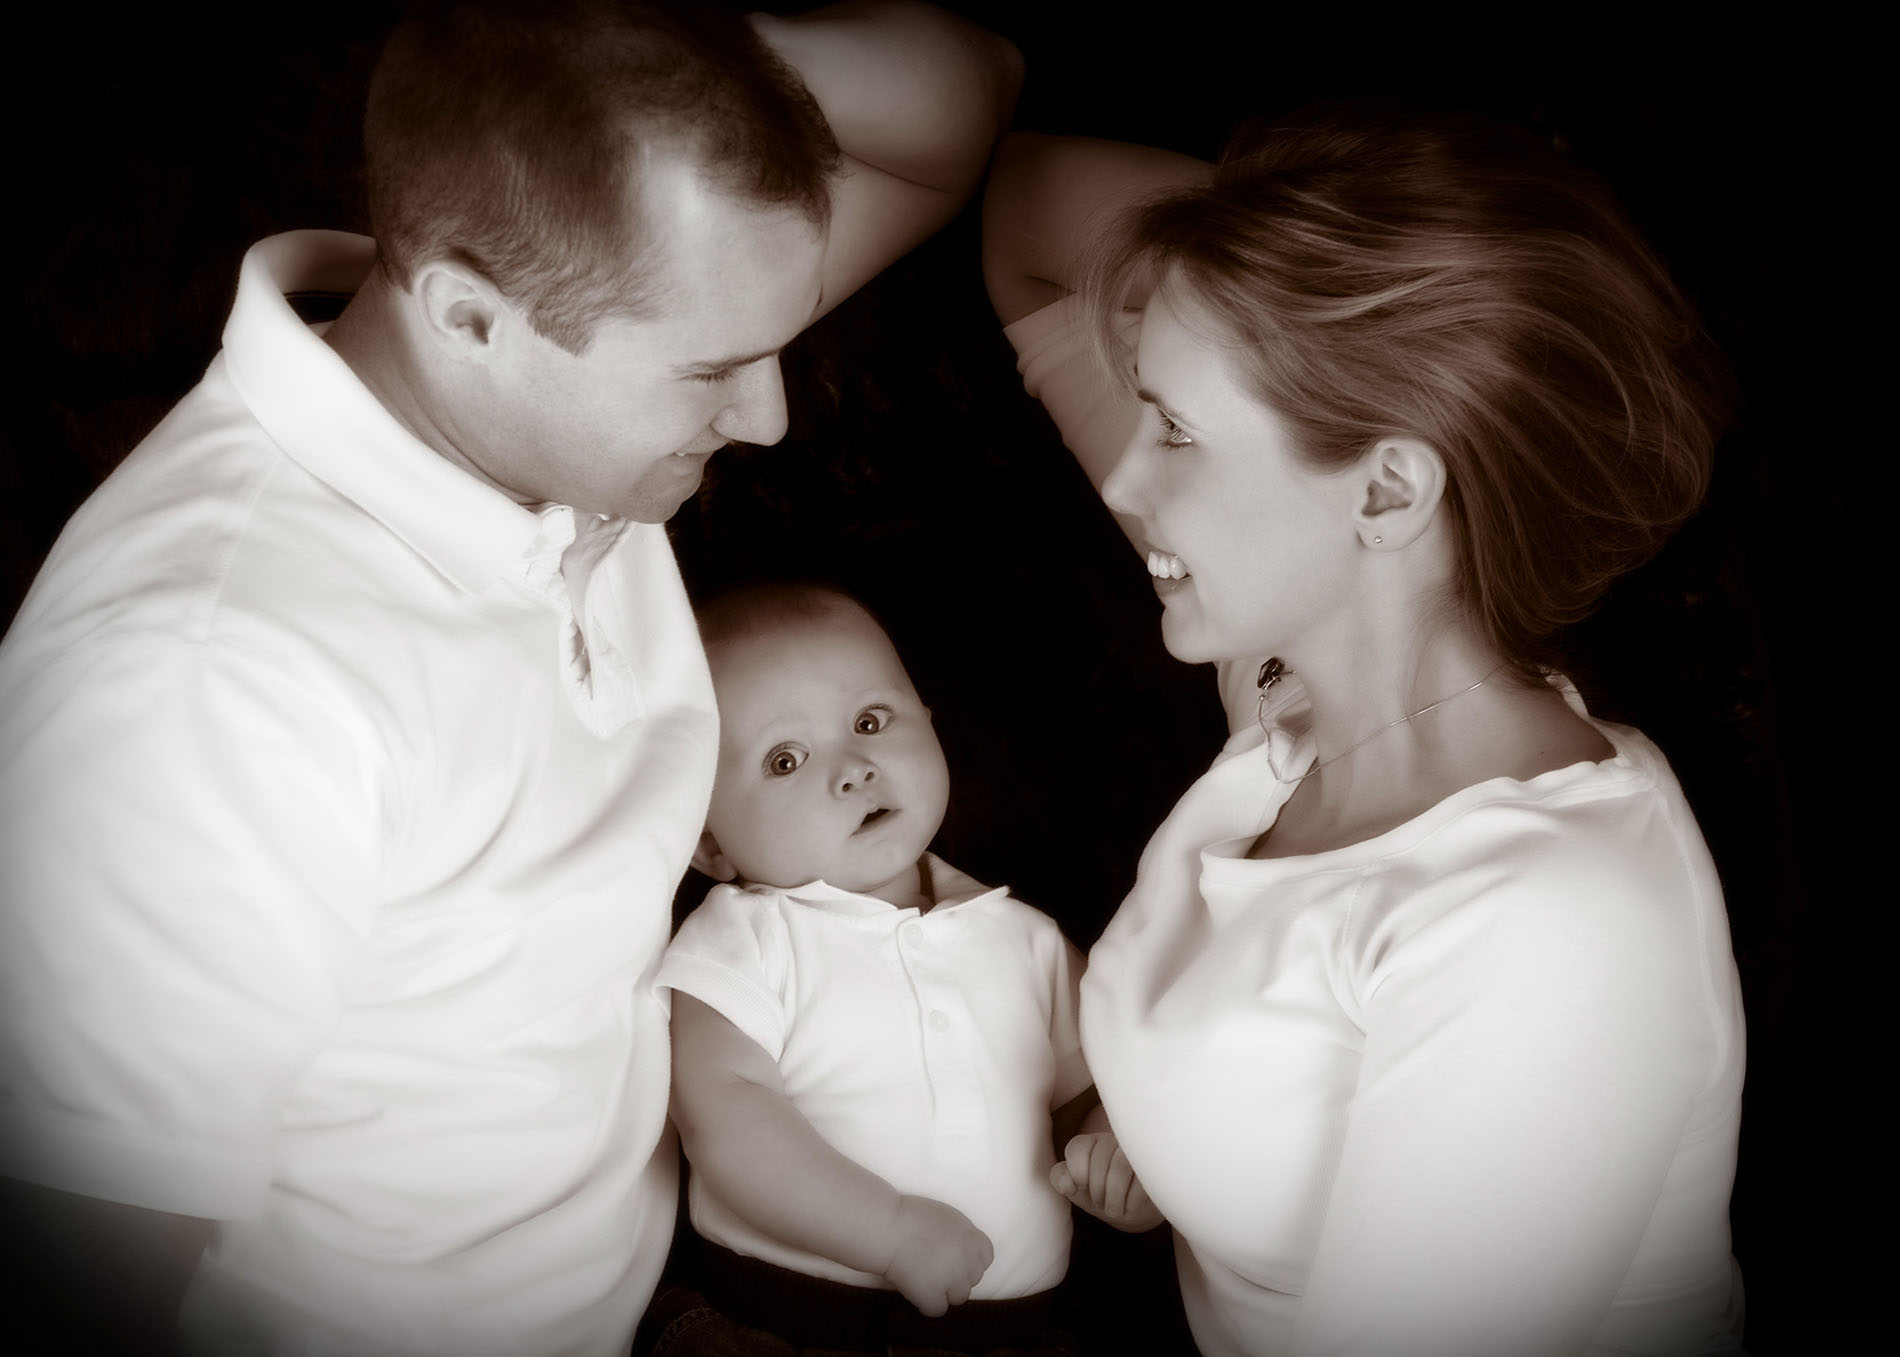 parents look at each other while baby looks at camera in black and white photo